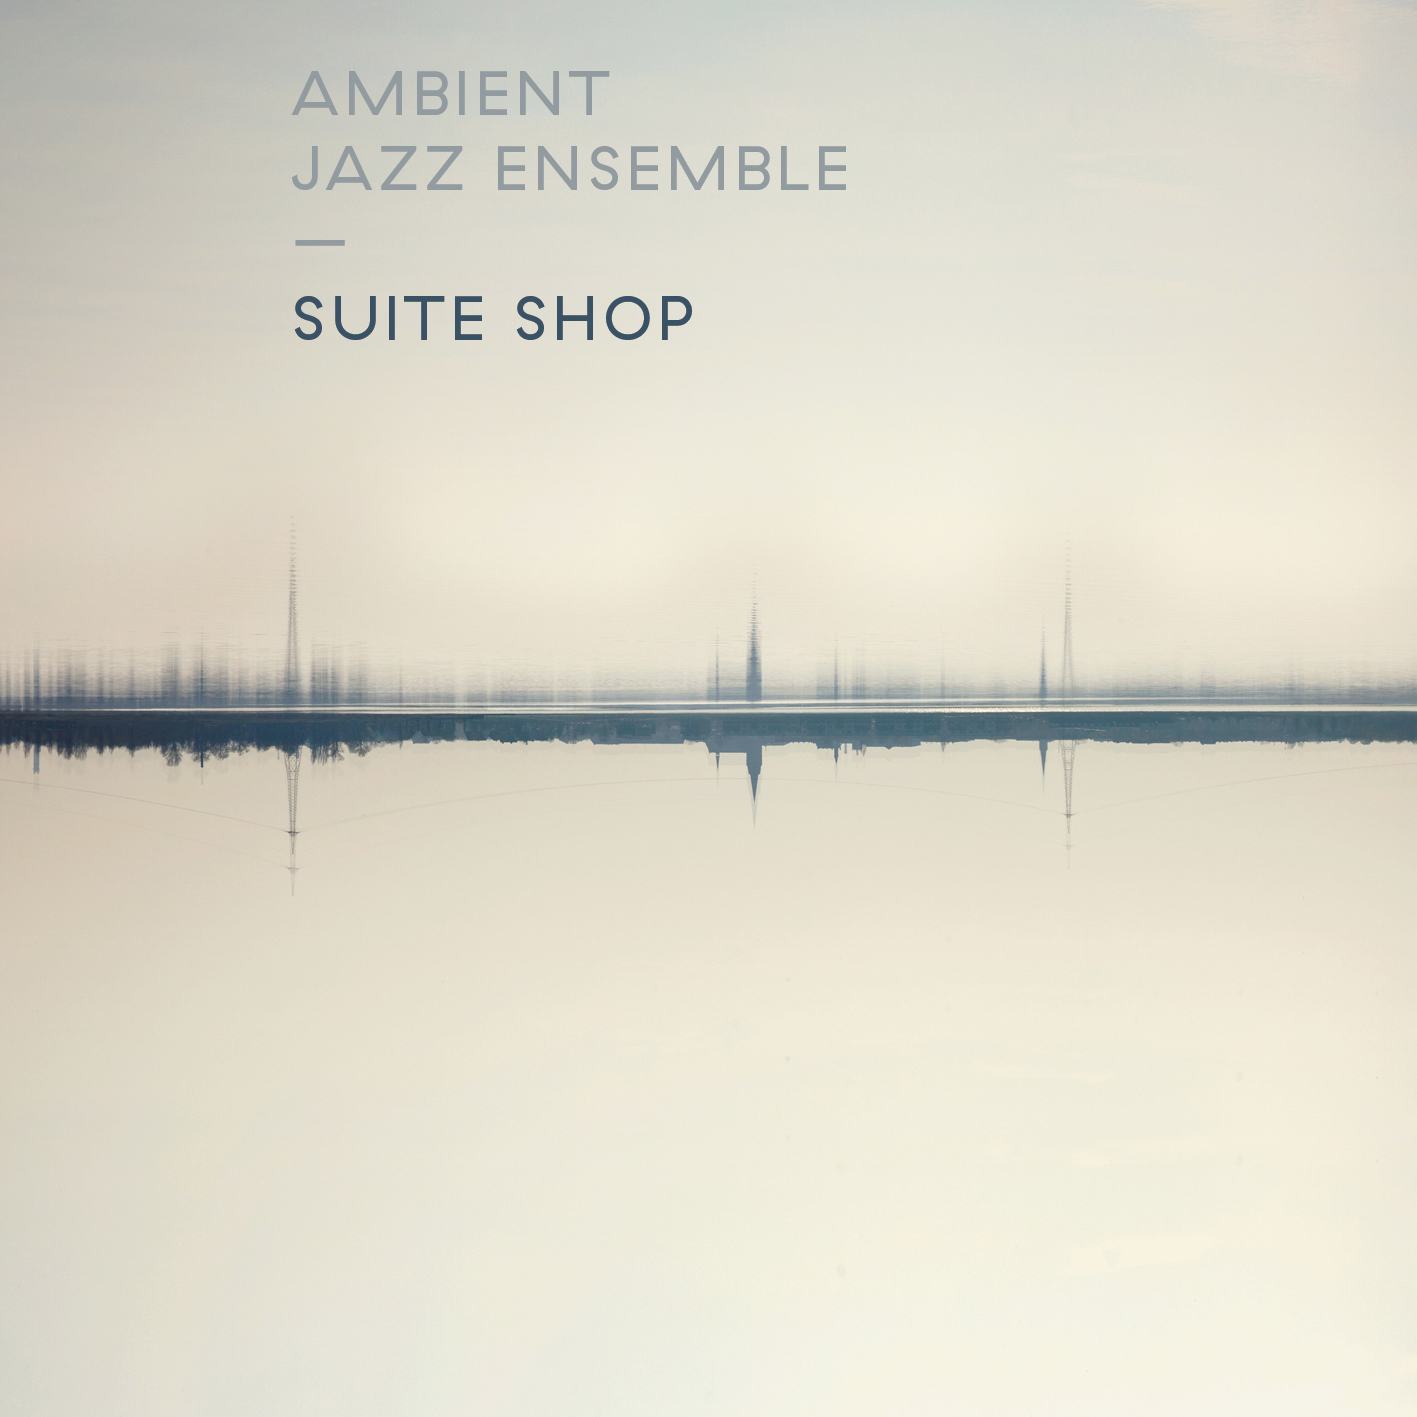 New music, the original Here & Now Recordings cinematic sounds release 'Suite Shop' by Ambient Jazz Ensemble and Neil Cowley. Listen and enjoy on Deezer.